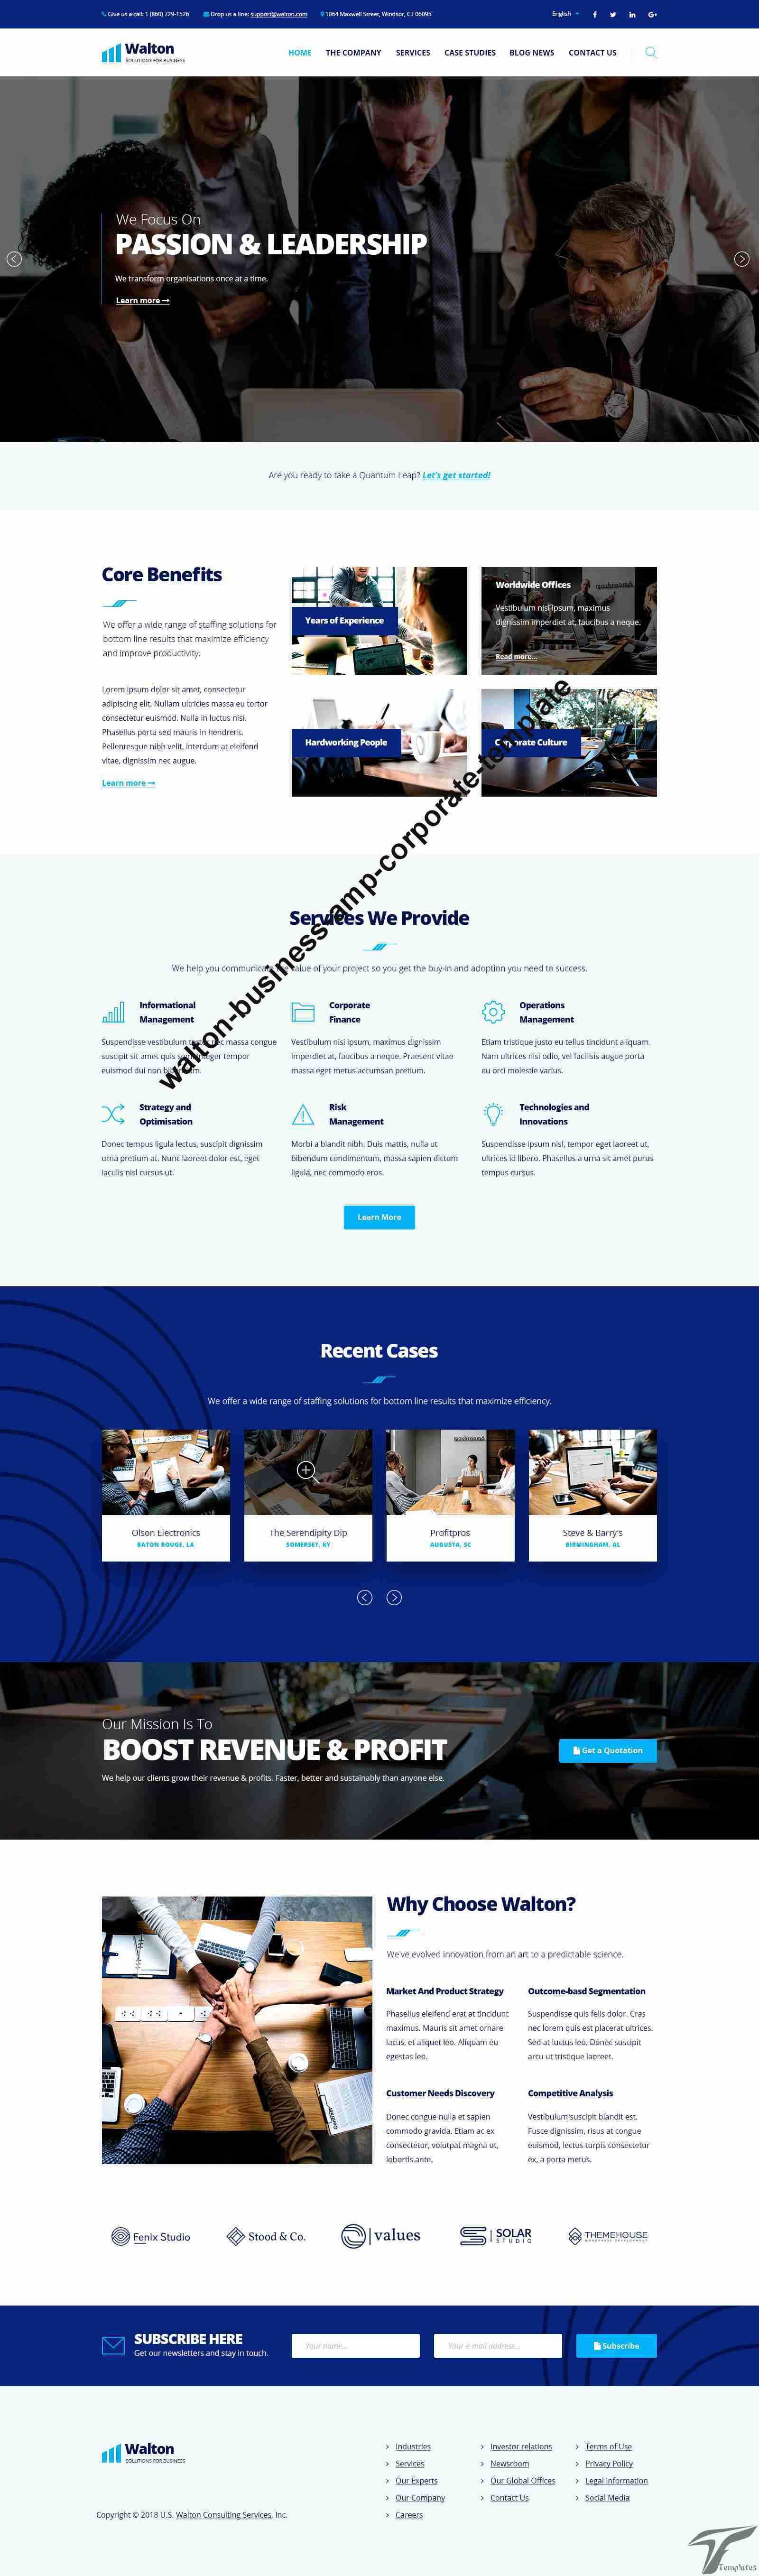 https://images.besthemes.com/images/h1_walton-business-amp-corporate-template3-_-248336682-sshot-03_walton_home_2.jpg